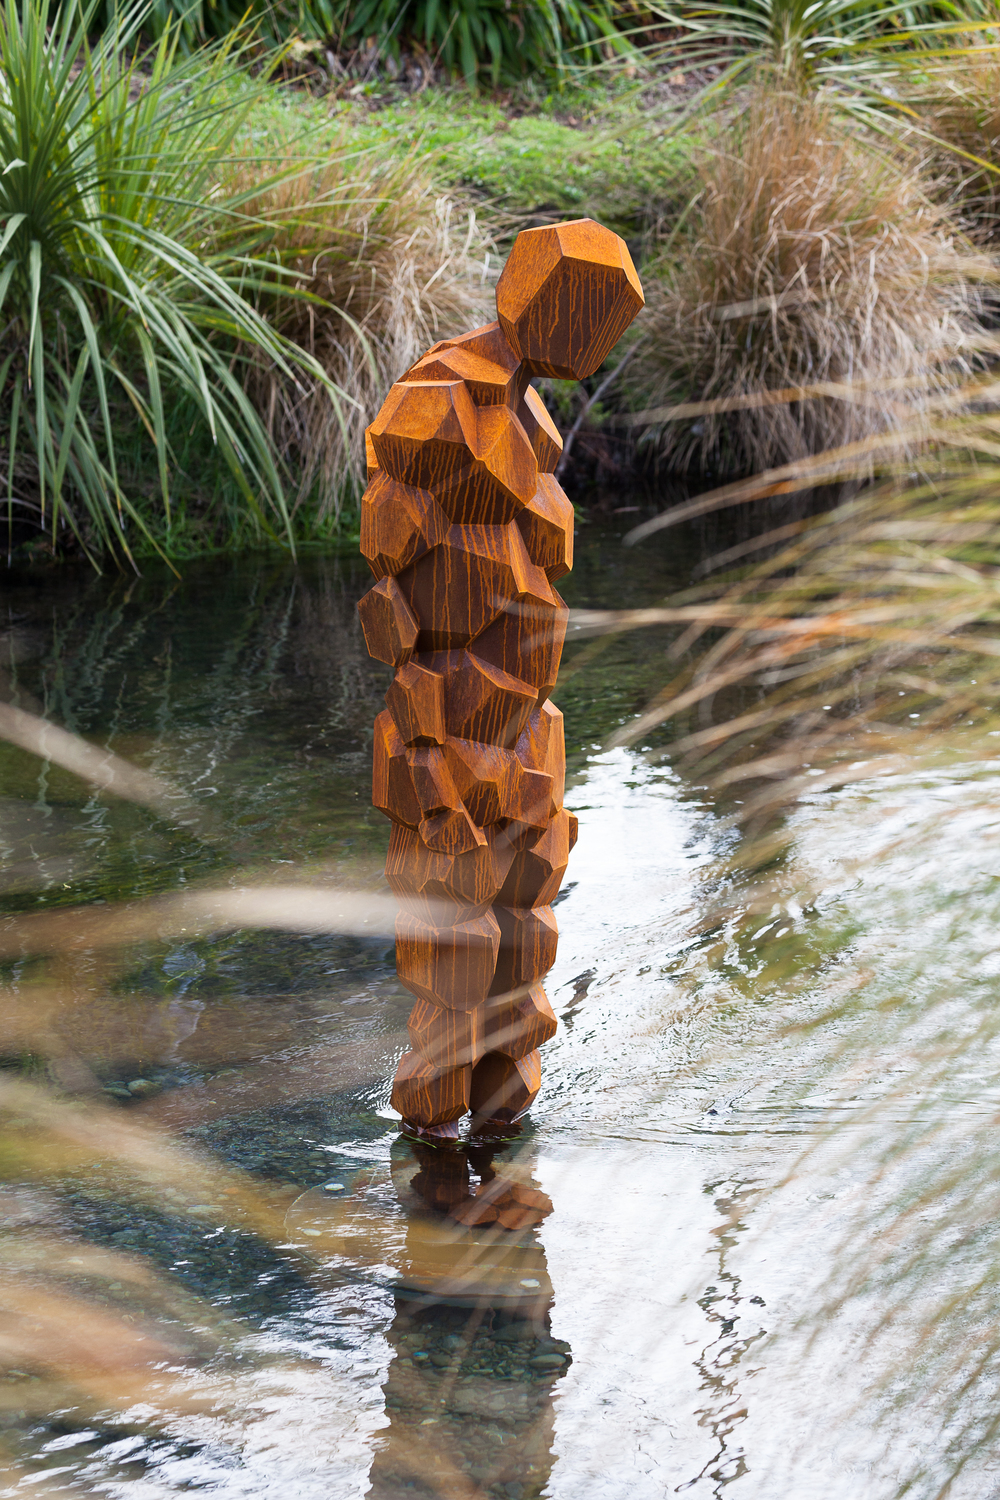 Antony Gormley,  STAY , 2015. One of two sculptures by Antony Gormley commissioned by the Christchurch City Council Public Art Advisory Group for installation on the occasion of SCAPE 8 Public Art Christchurch Biennial, Christchurch, New Zealand. Courtesy of the artist. Photo by Bridgit Anderson.